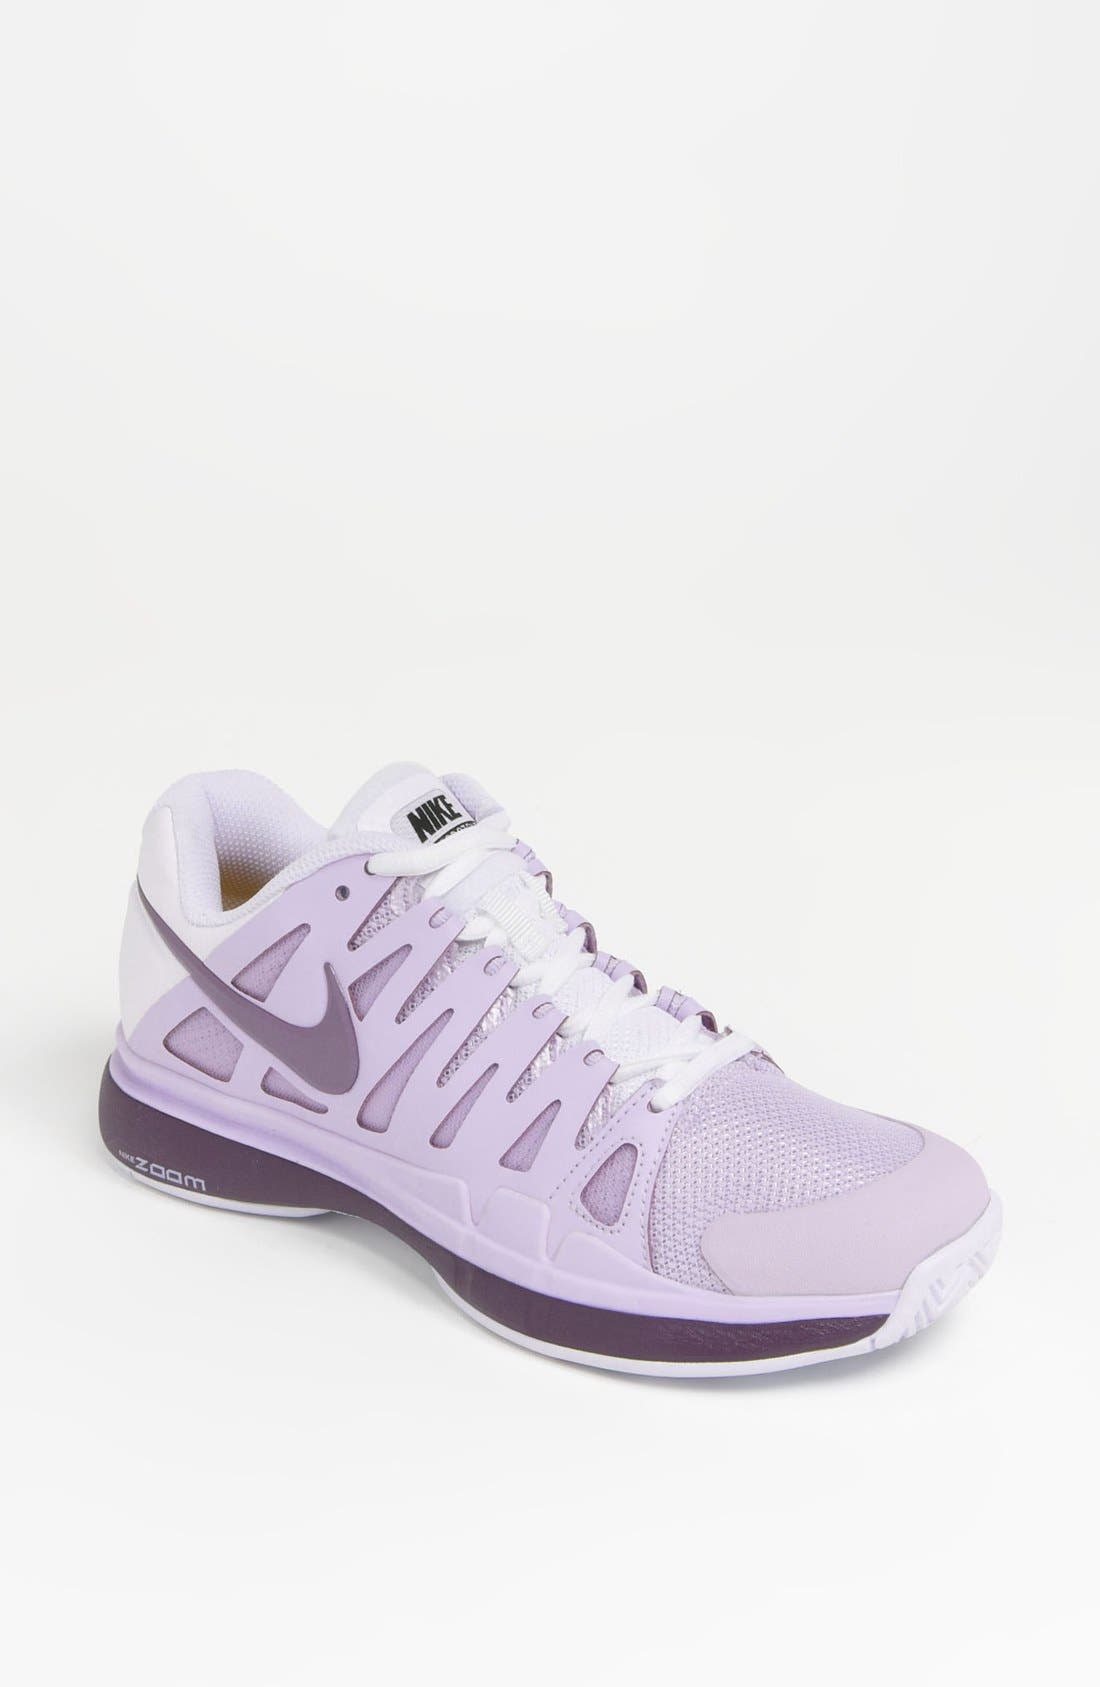 Main Image - Nike 'Zoom Vapor 9 Tour' Tennis Shoe (Women)